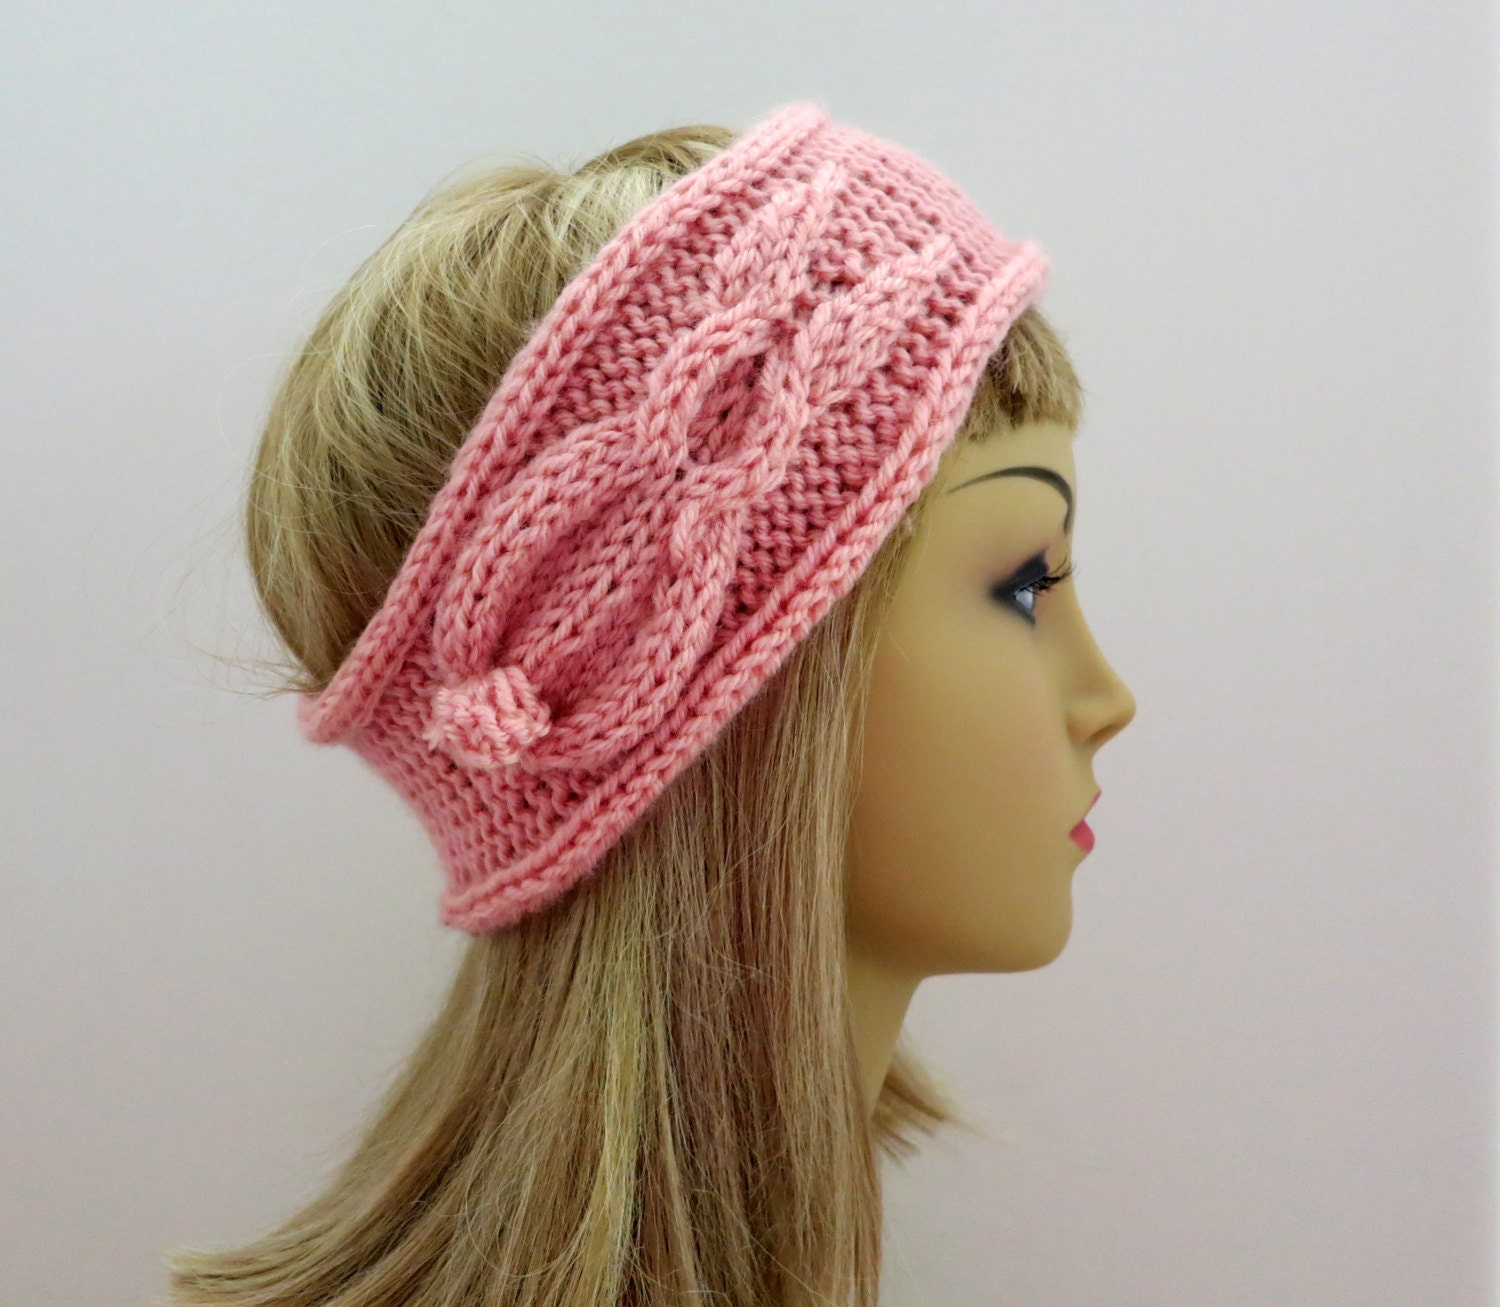 Bunny Ears Knitting Pattern : Hat Headband Knitting Pattern Bunny Rabbit Beanie Tam